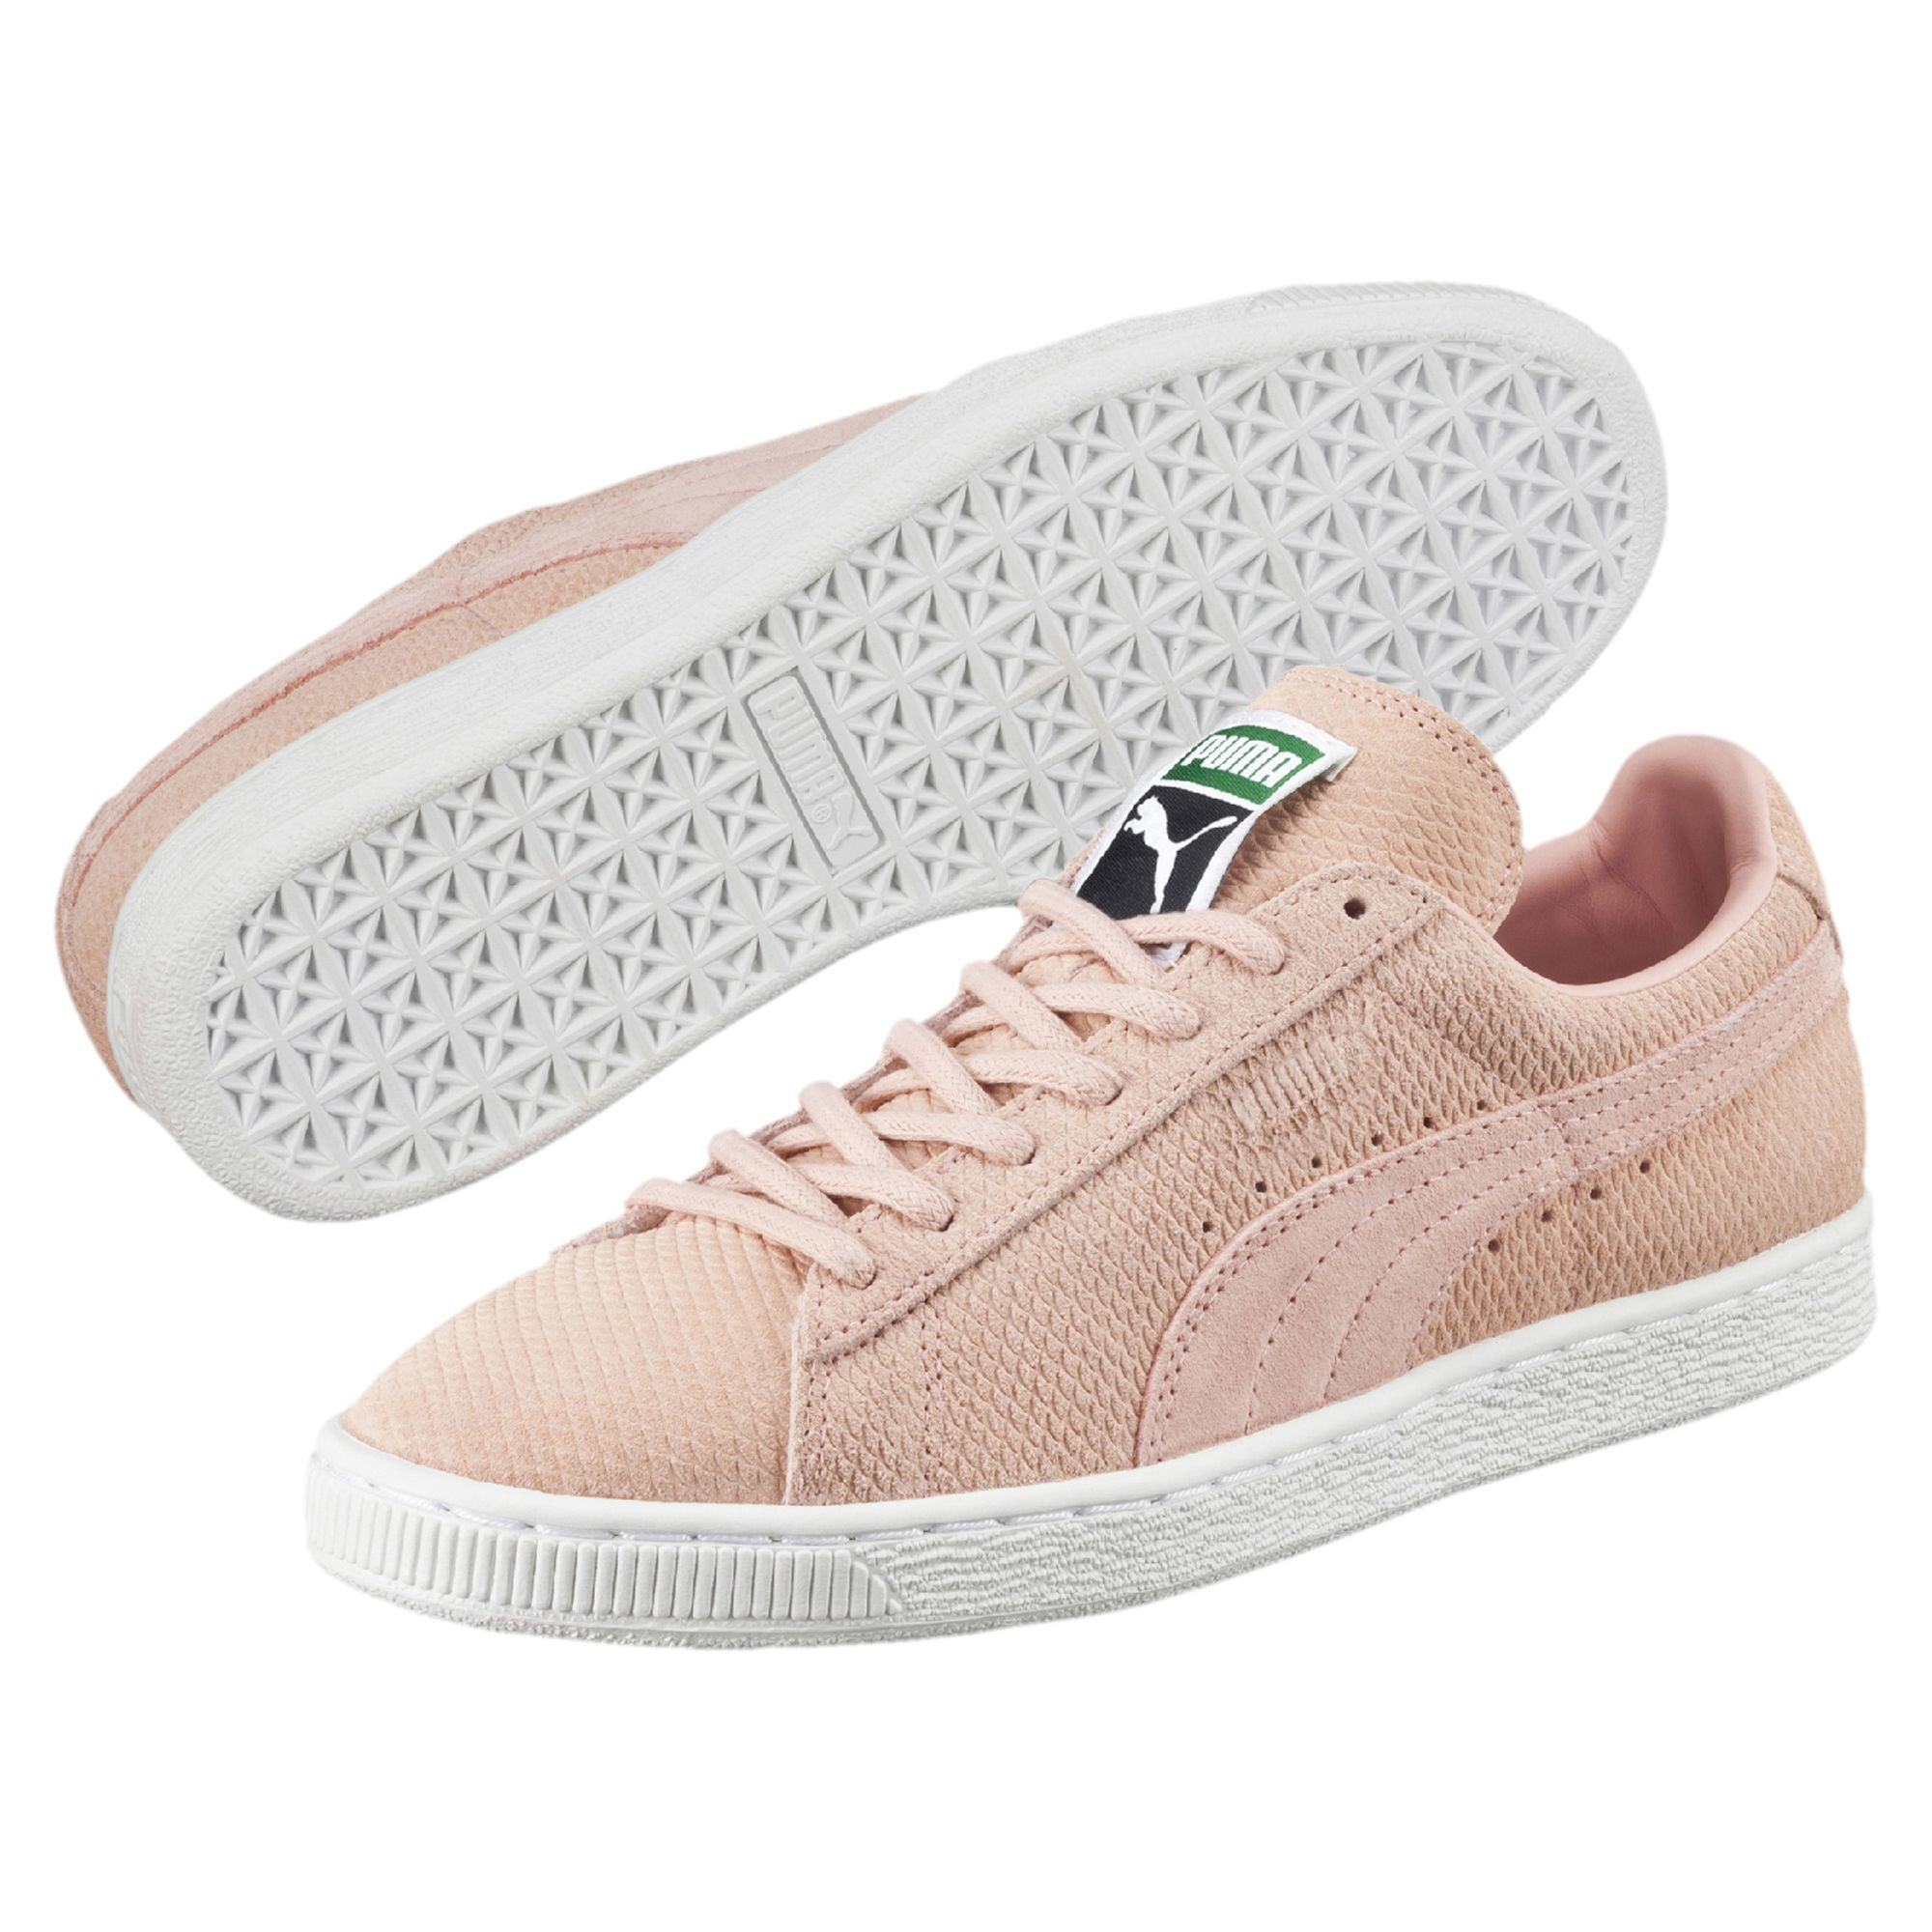 puma suede creepers rose pale